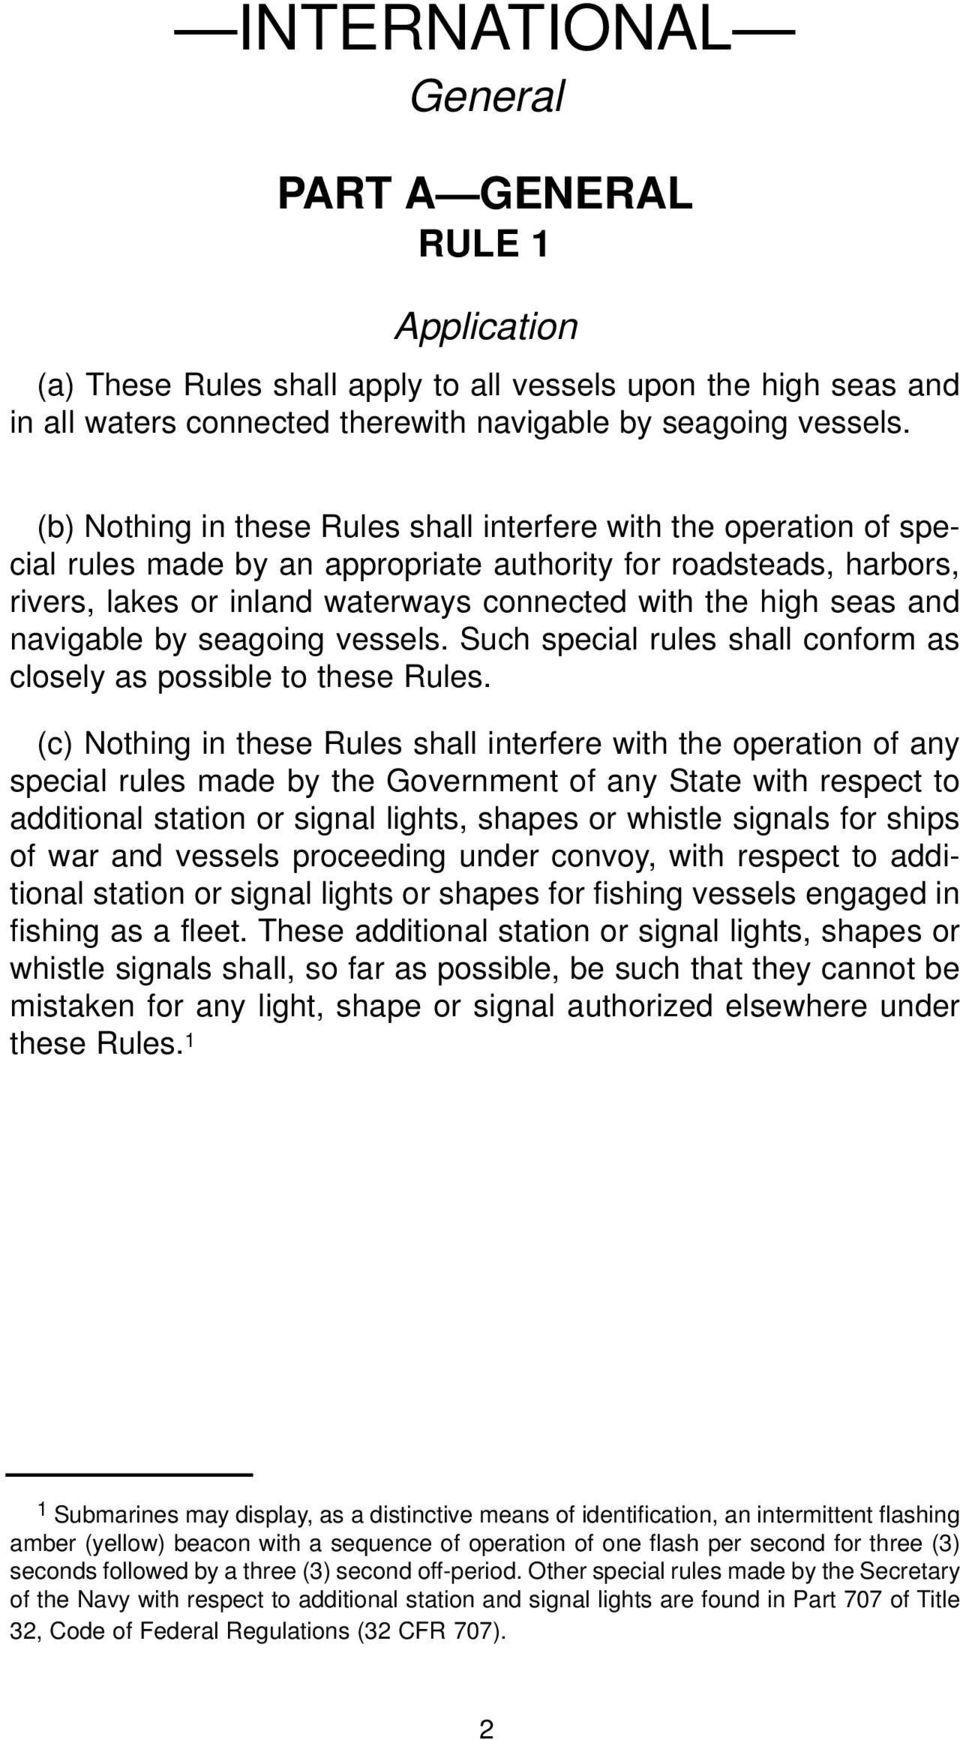 and navigable by seagoing vessels. Such special rules shall conform as closely as possible to these Rules.